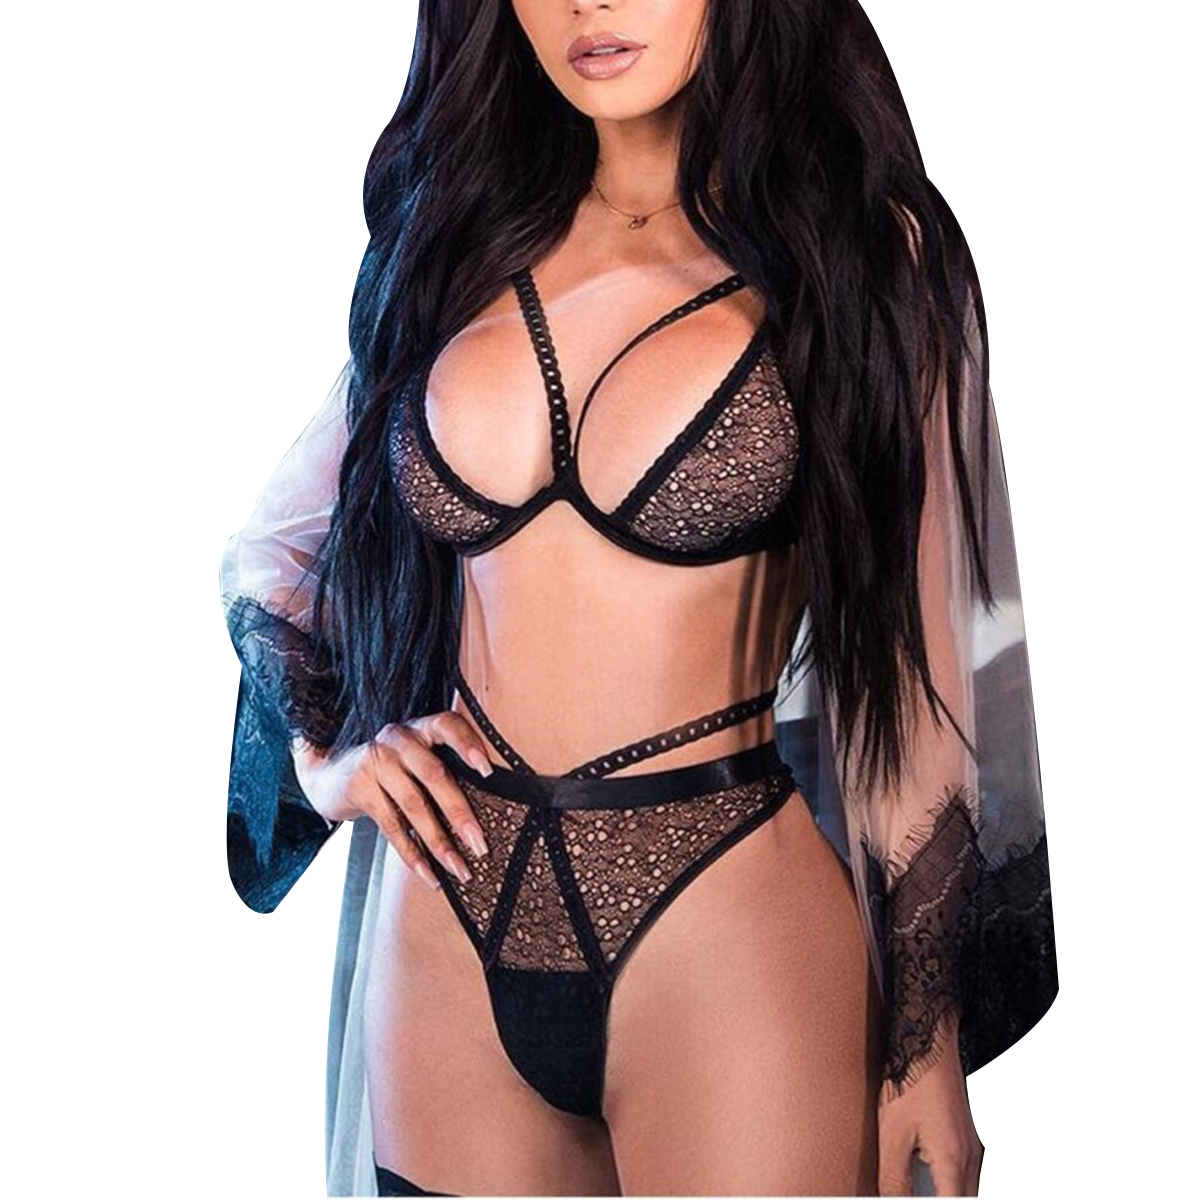 New Sexy Woman Set Exotic 2 Piece Sexy Lingerie Lace Deep V Erotic Underwear Lingerie Set Pure Lace Bralette Bra and Panties